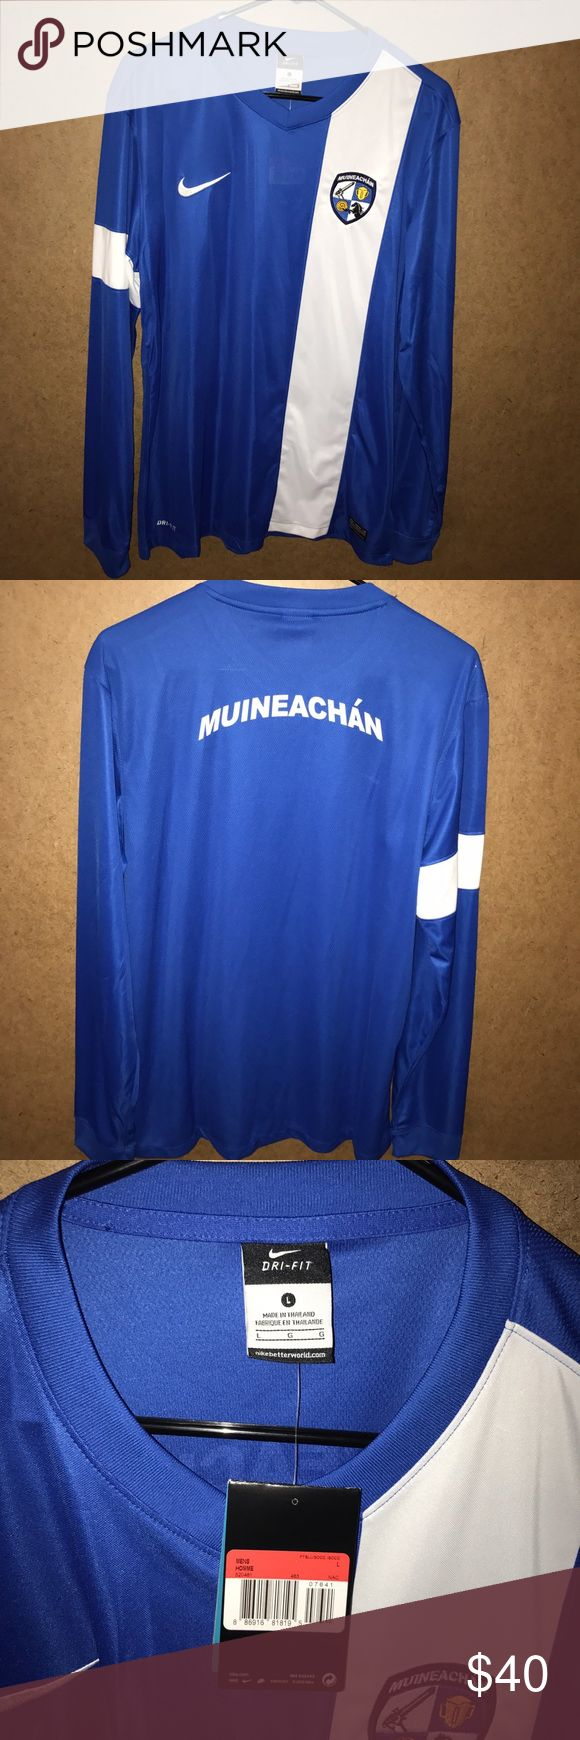 Nike Muineachán Soccer Jersey NWT Men's Muineachán Nike Soccer Jersey. Size Large. Jersey is from the Gaelic Athletic Association Senior Football Cup Team. Not a common Jersey... this is the first one I've seen. Would be pretty cool to own. Jersey is in MINT condition. Zero flaws. Nike Shirts